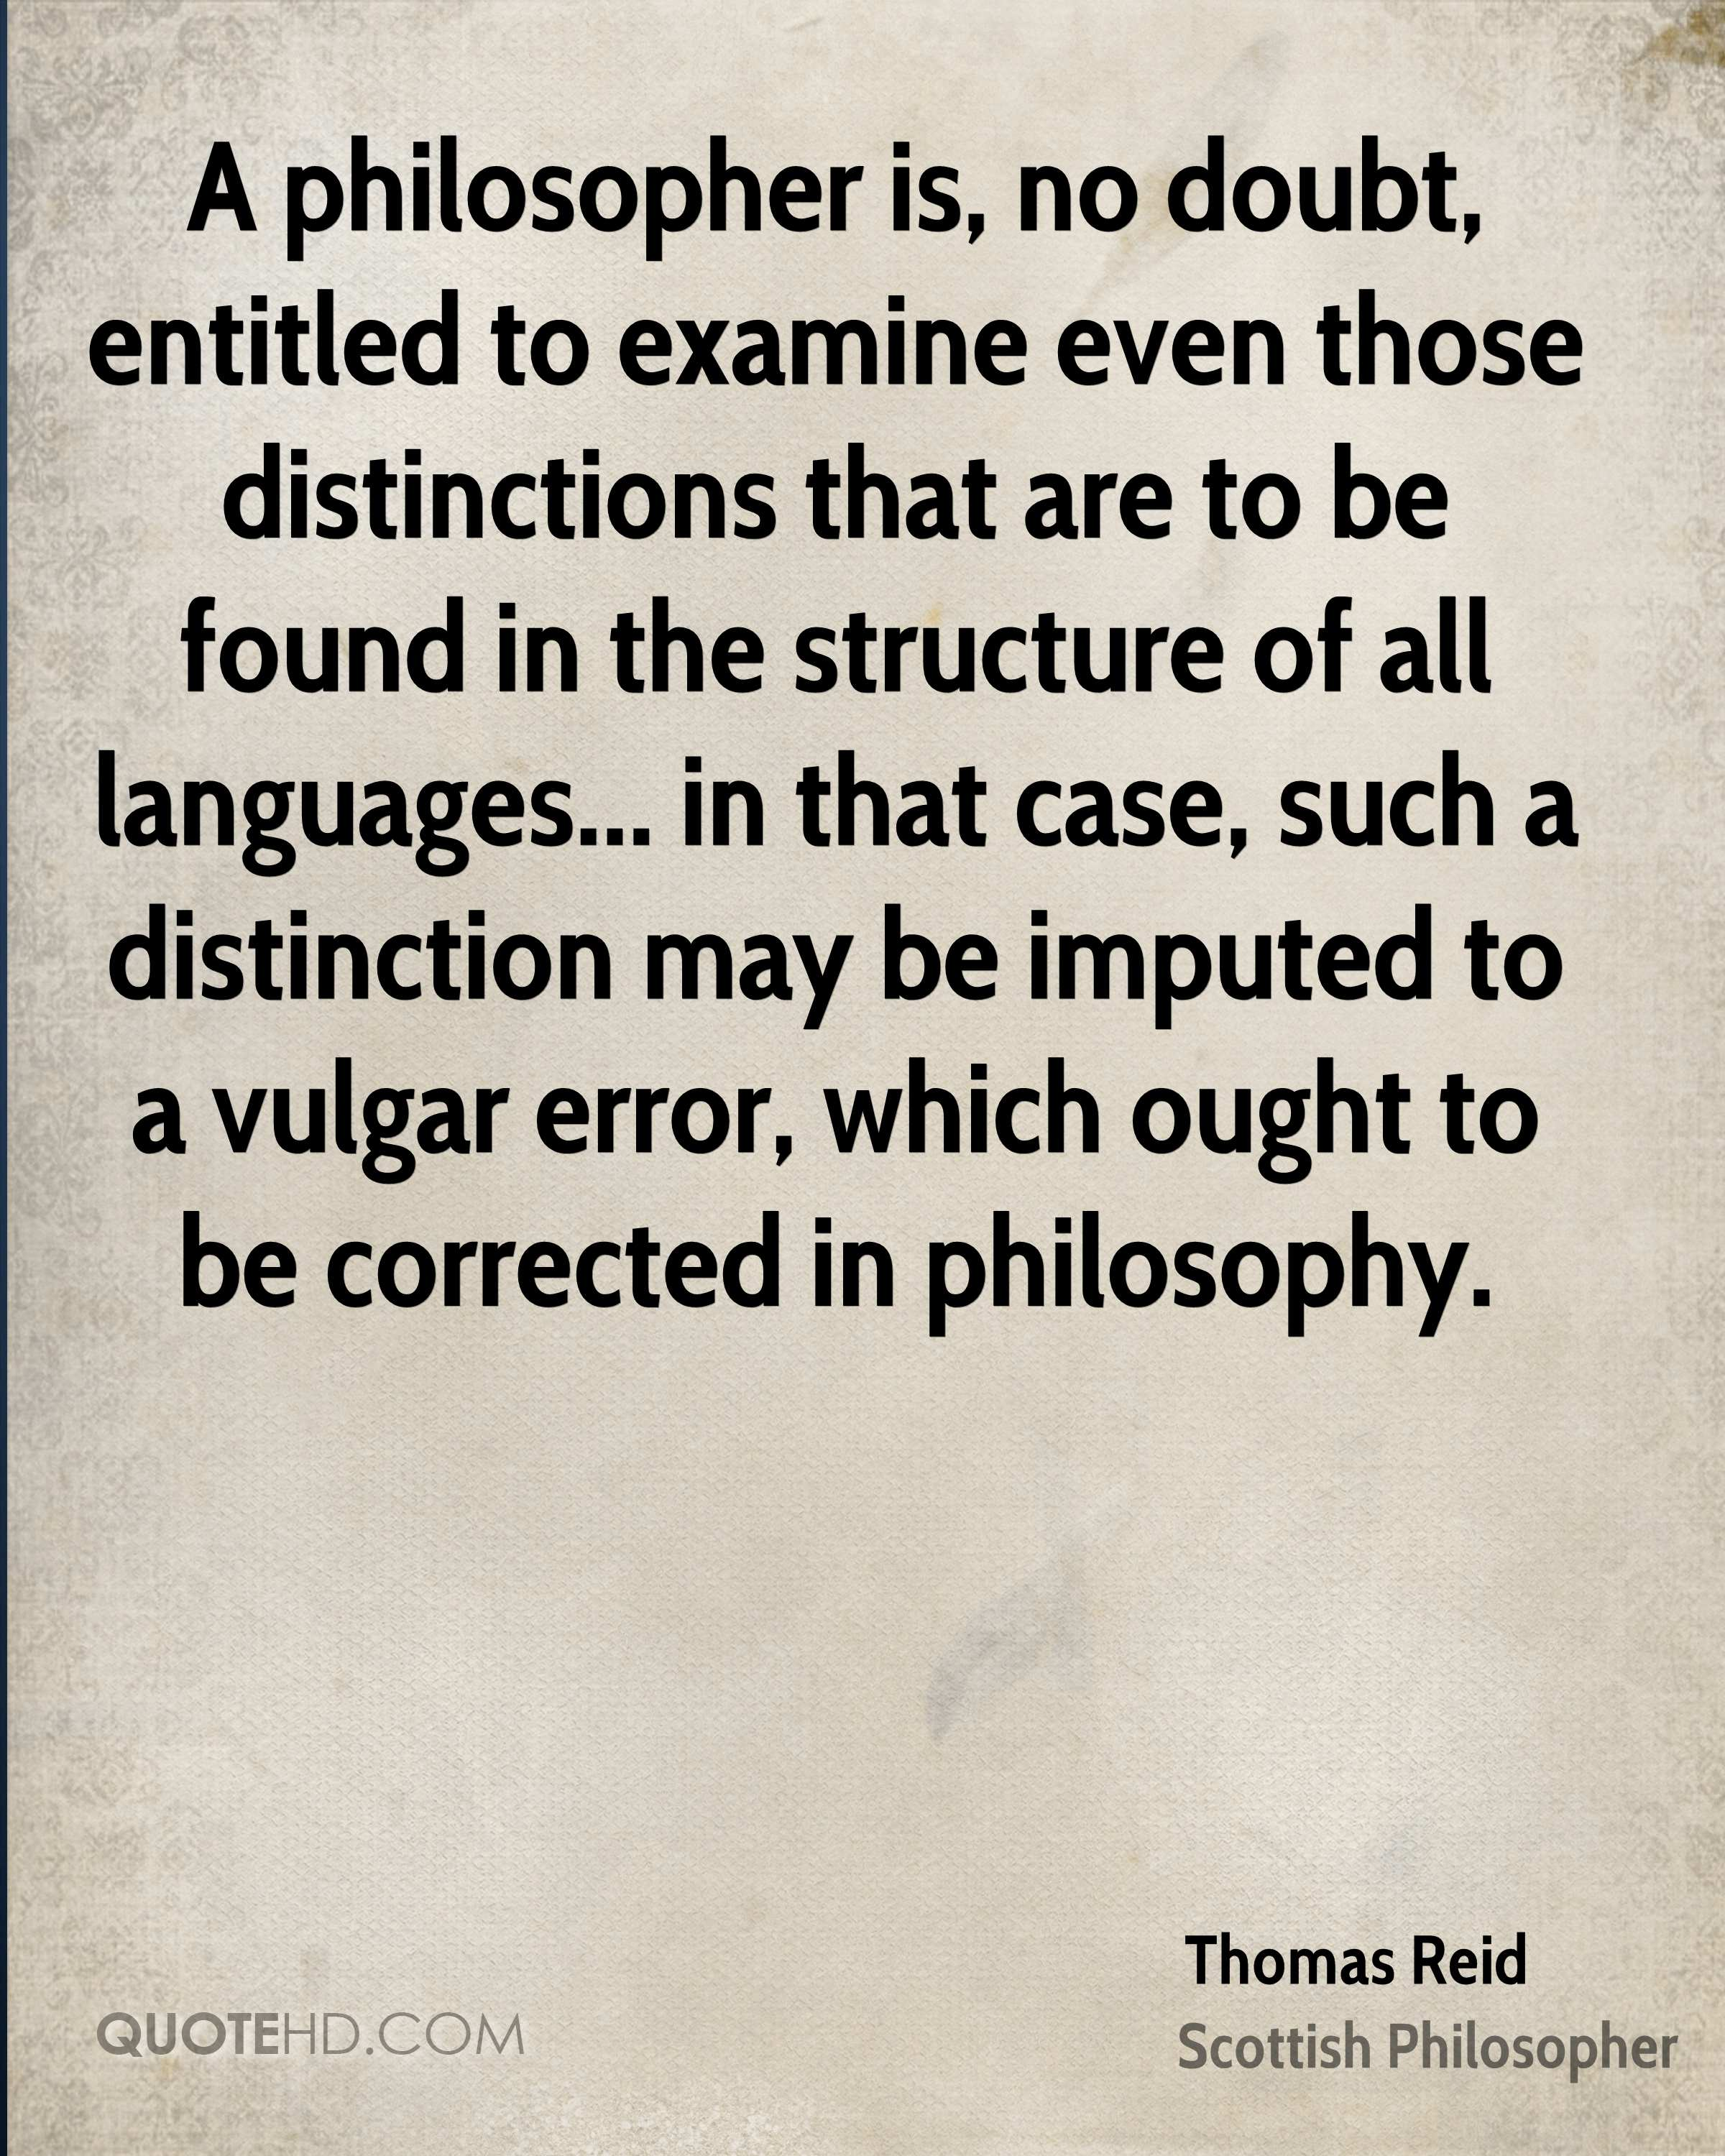 A philosopher is, no doubt, entitled to examine even those distinctions that are to be found in the structure of all languages... in that case, such a distinction may be imputed to a vulgar error, which ought to be corrected in philosophy.